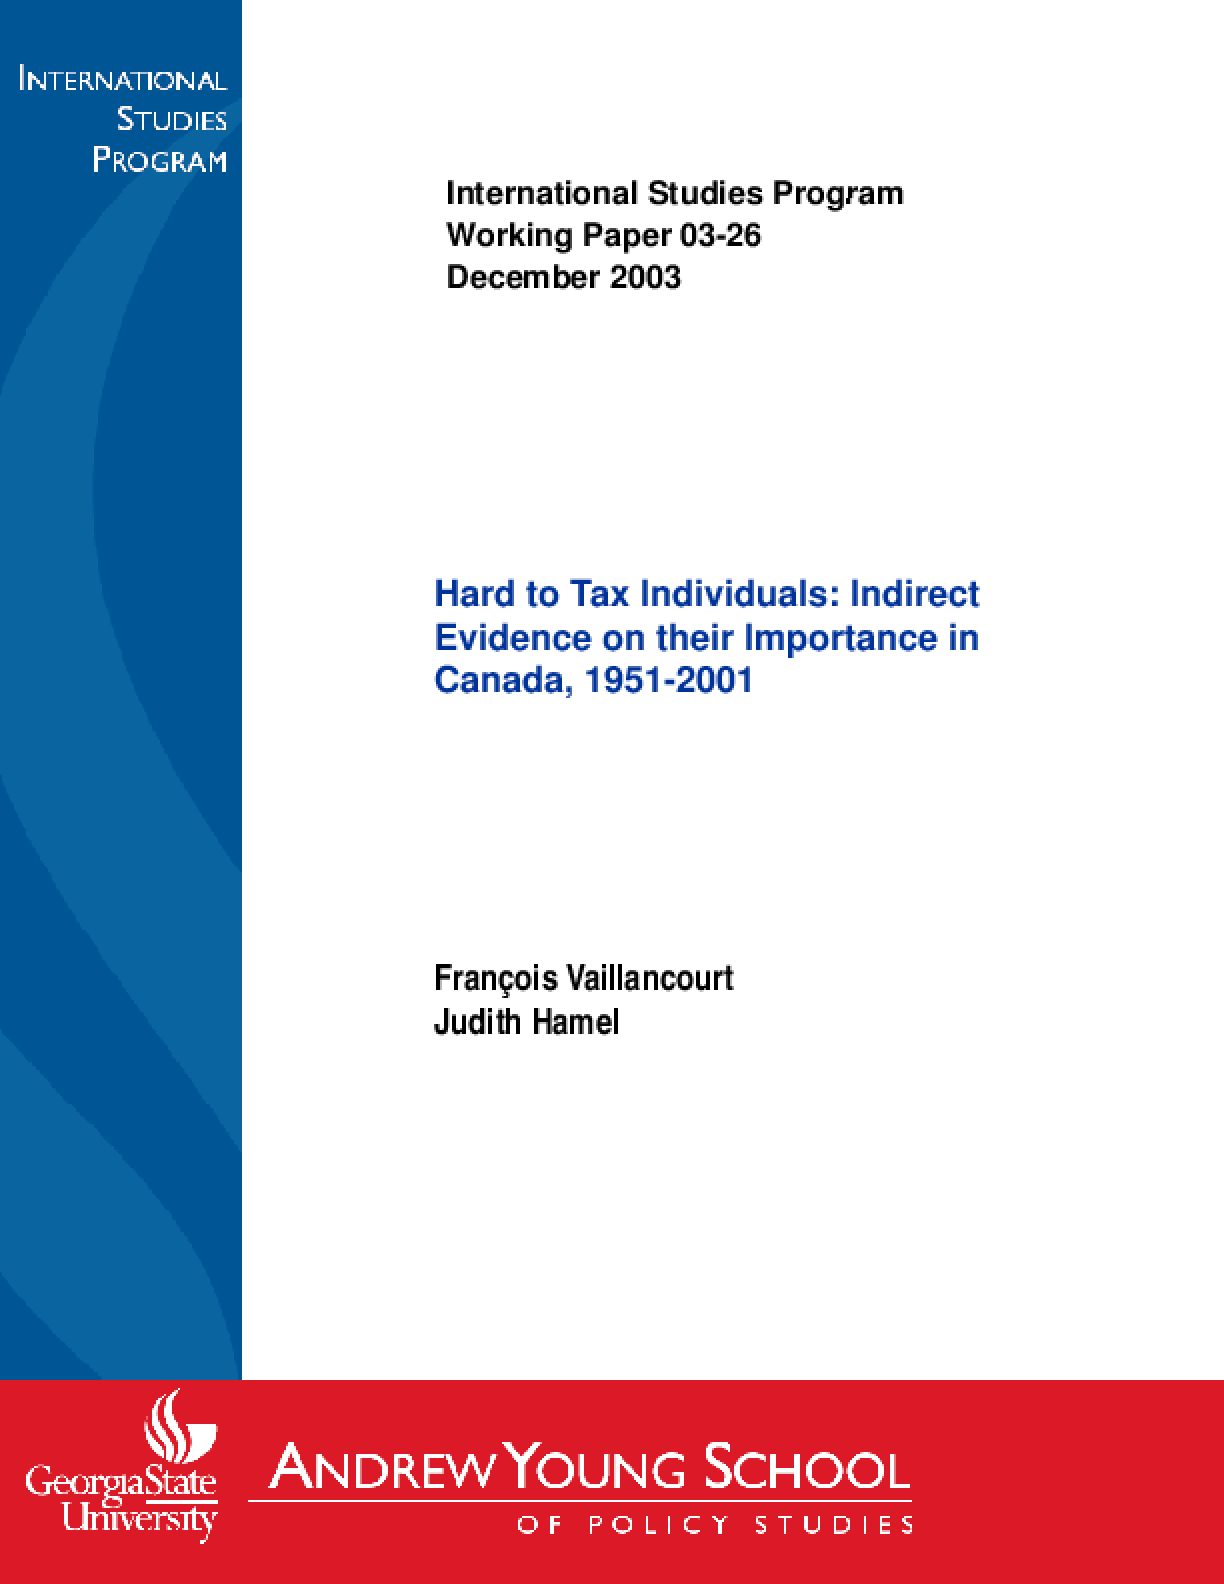 Hard to Tax Individuals: Indirect Evidence on Their Importance in Canada, 1951-2001